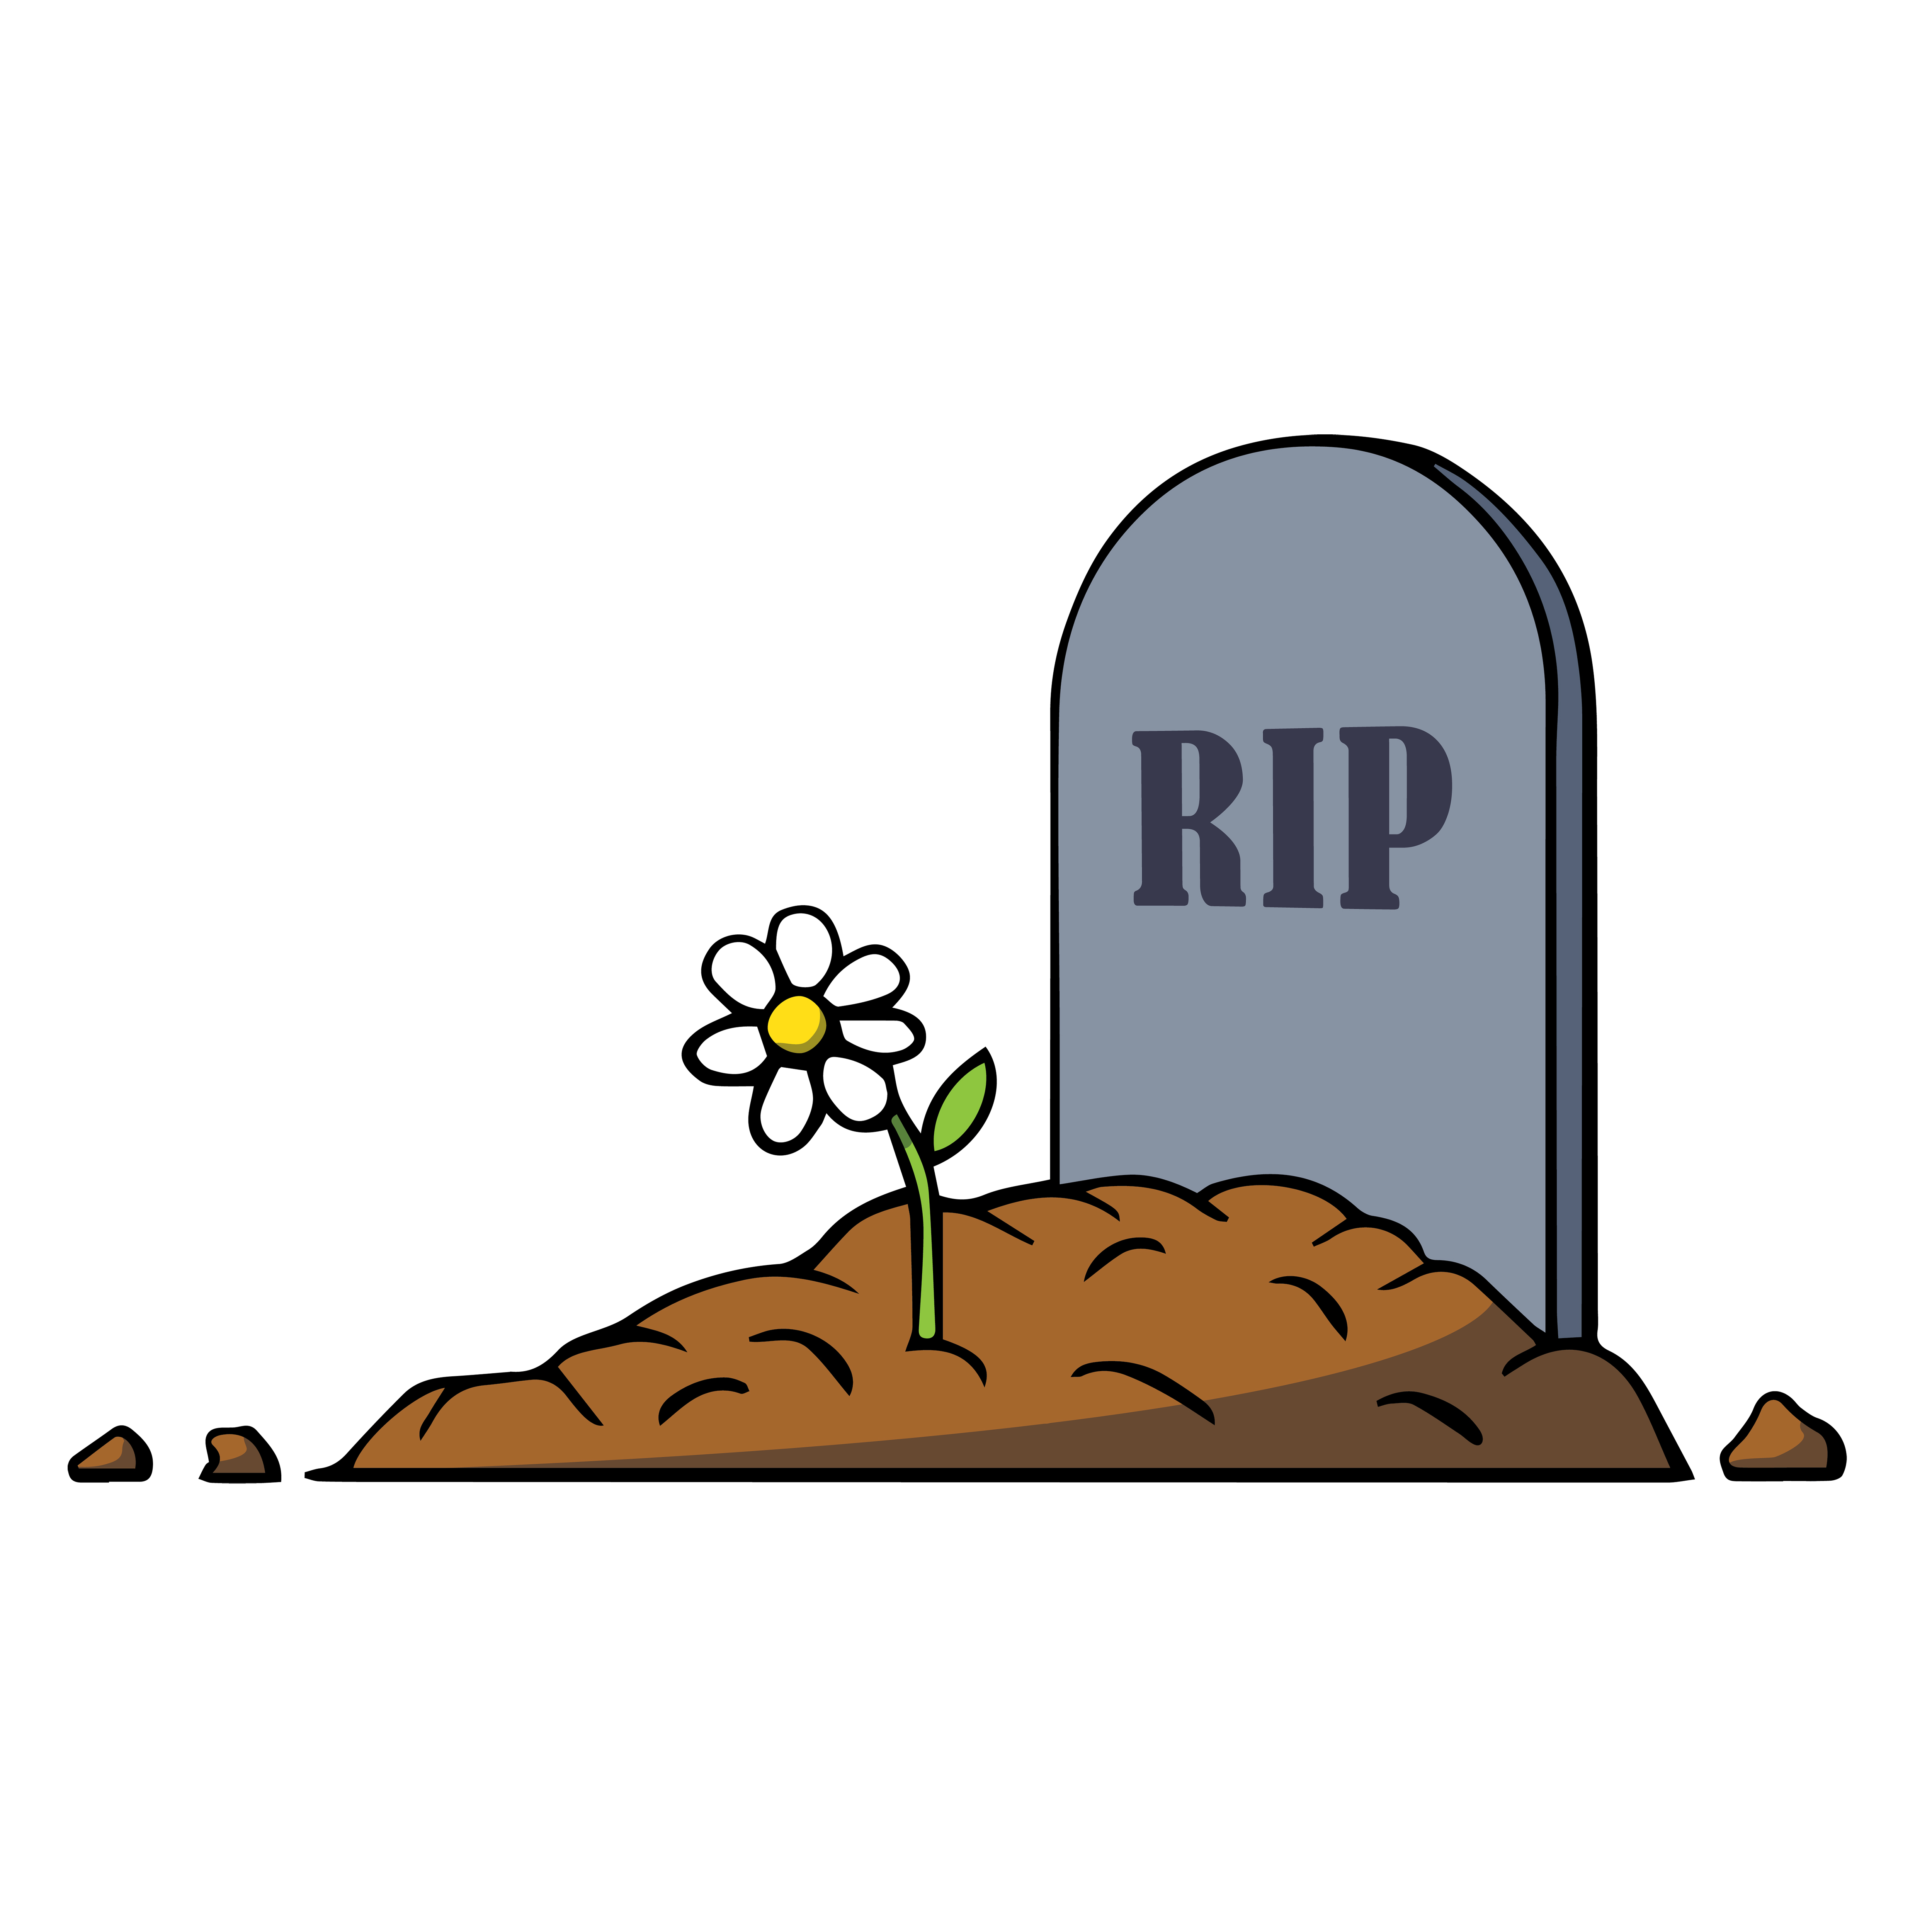 Rip clipart 4 » Clipart Station.